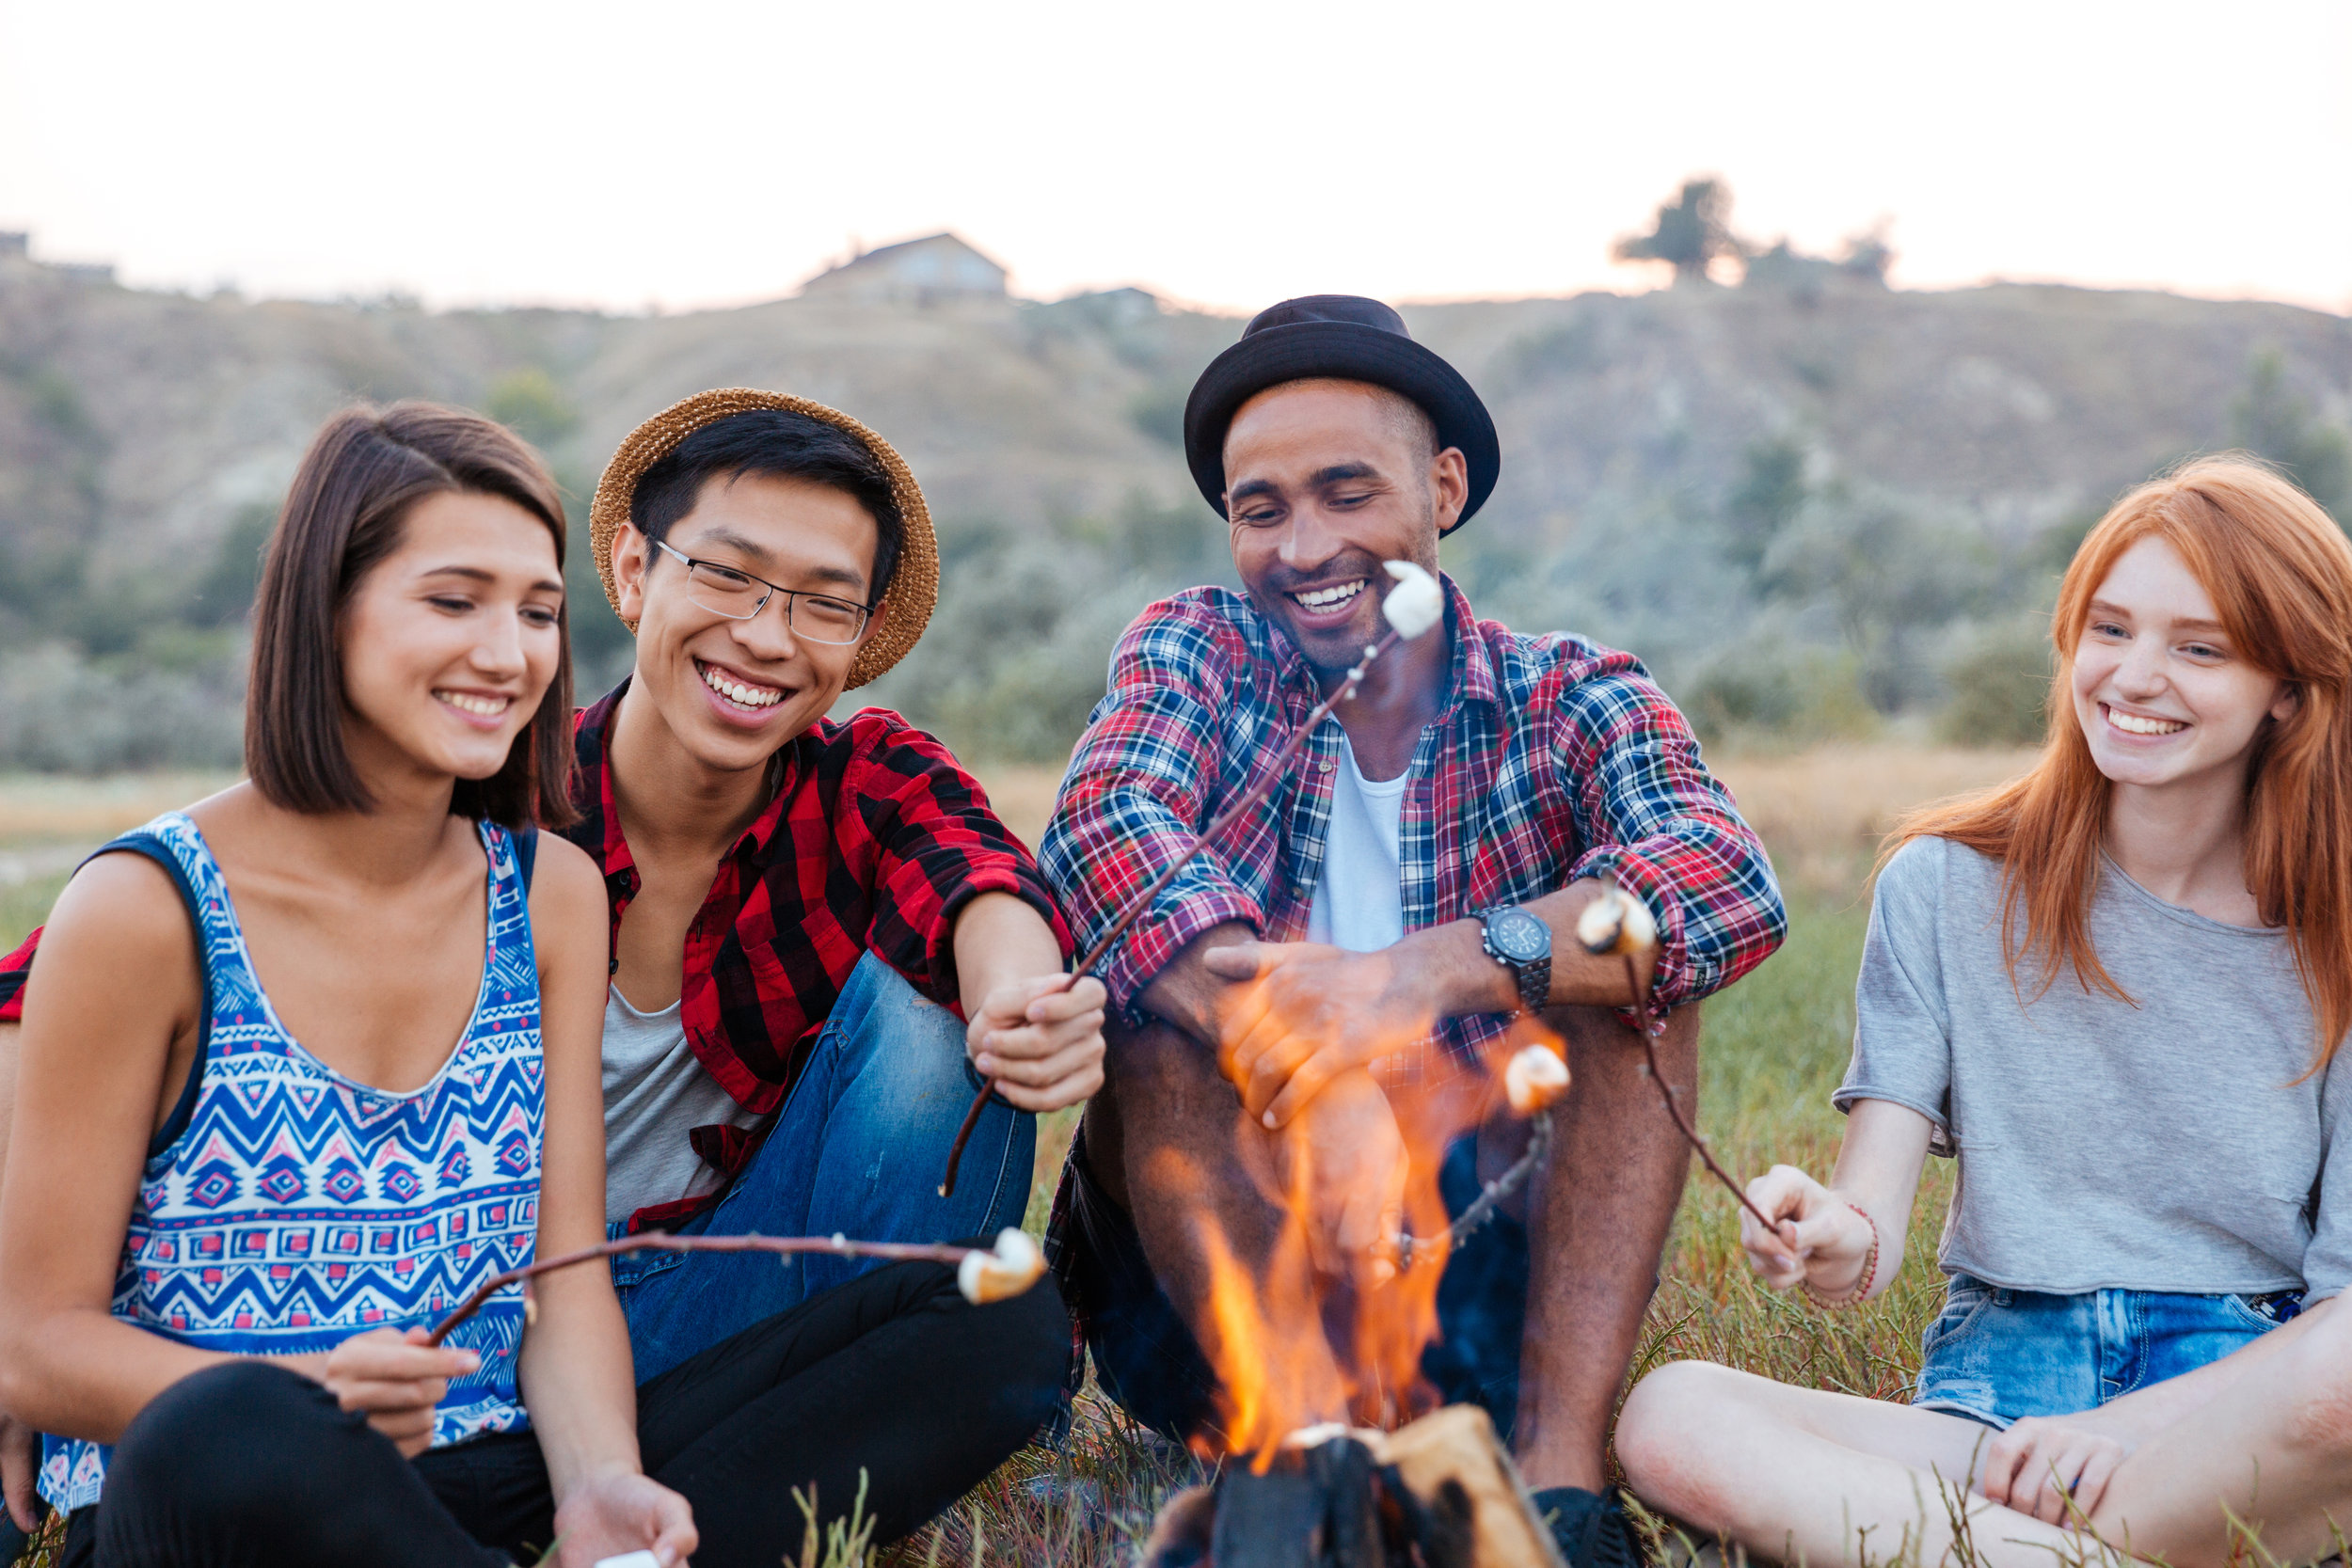 happy-young-people-sitting-and-roasting-PPZBVFU.jpg